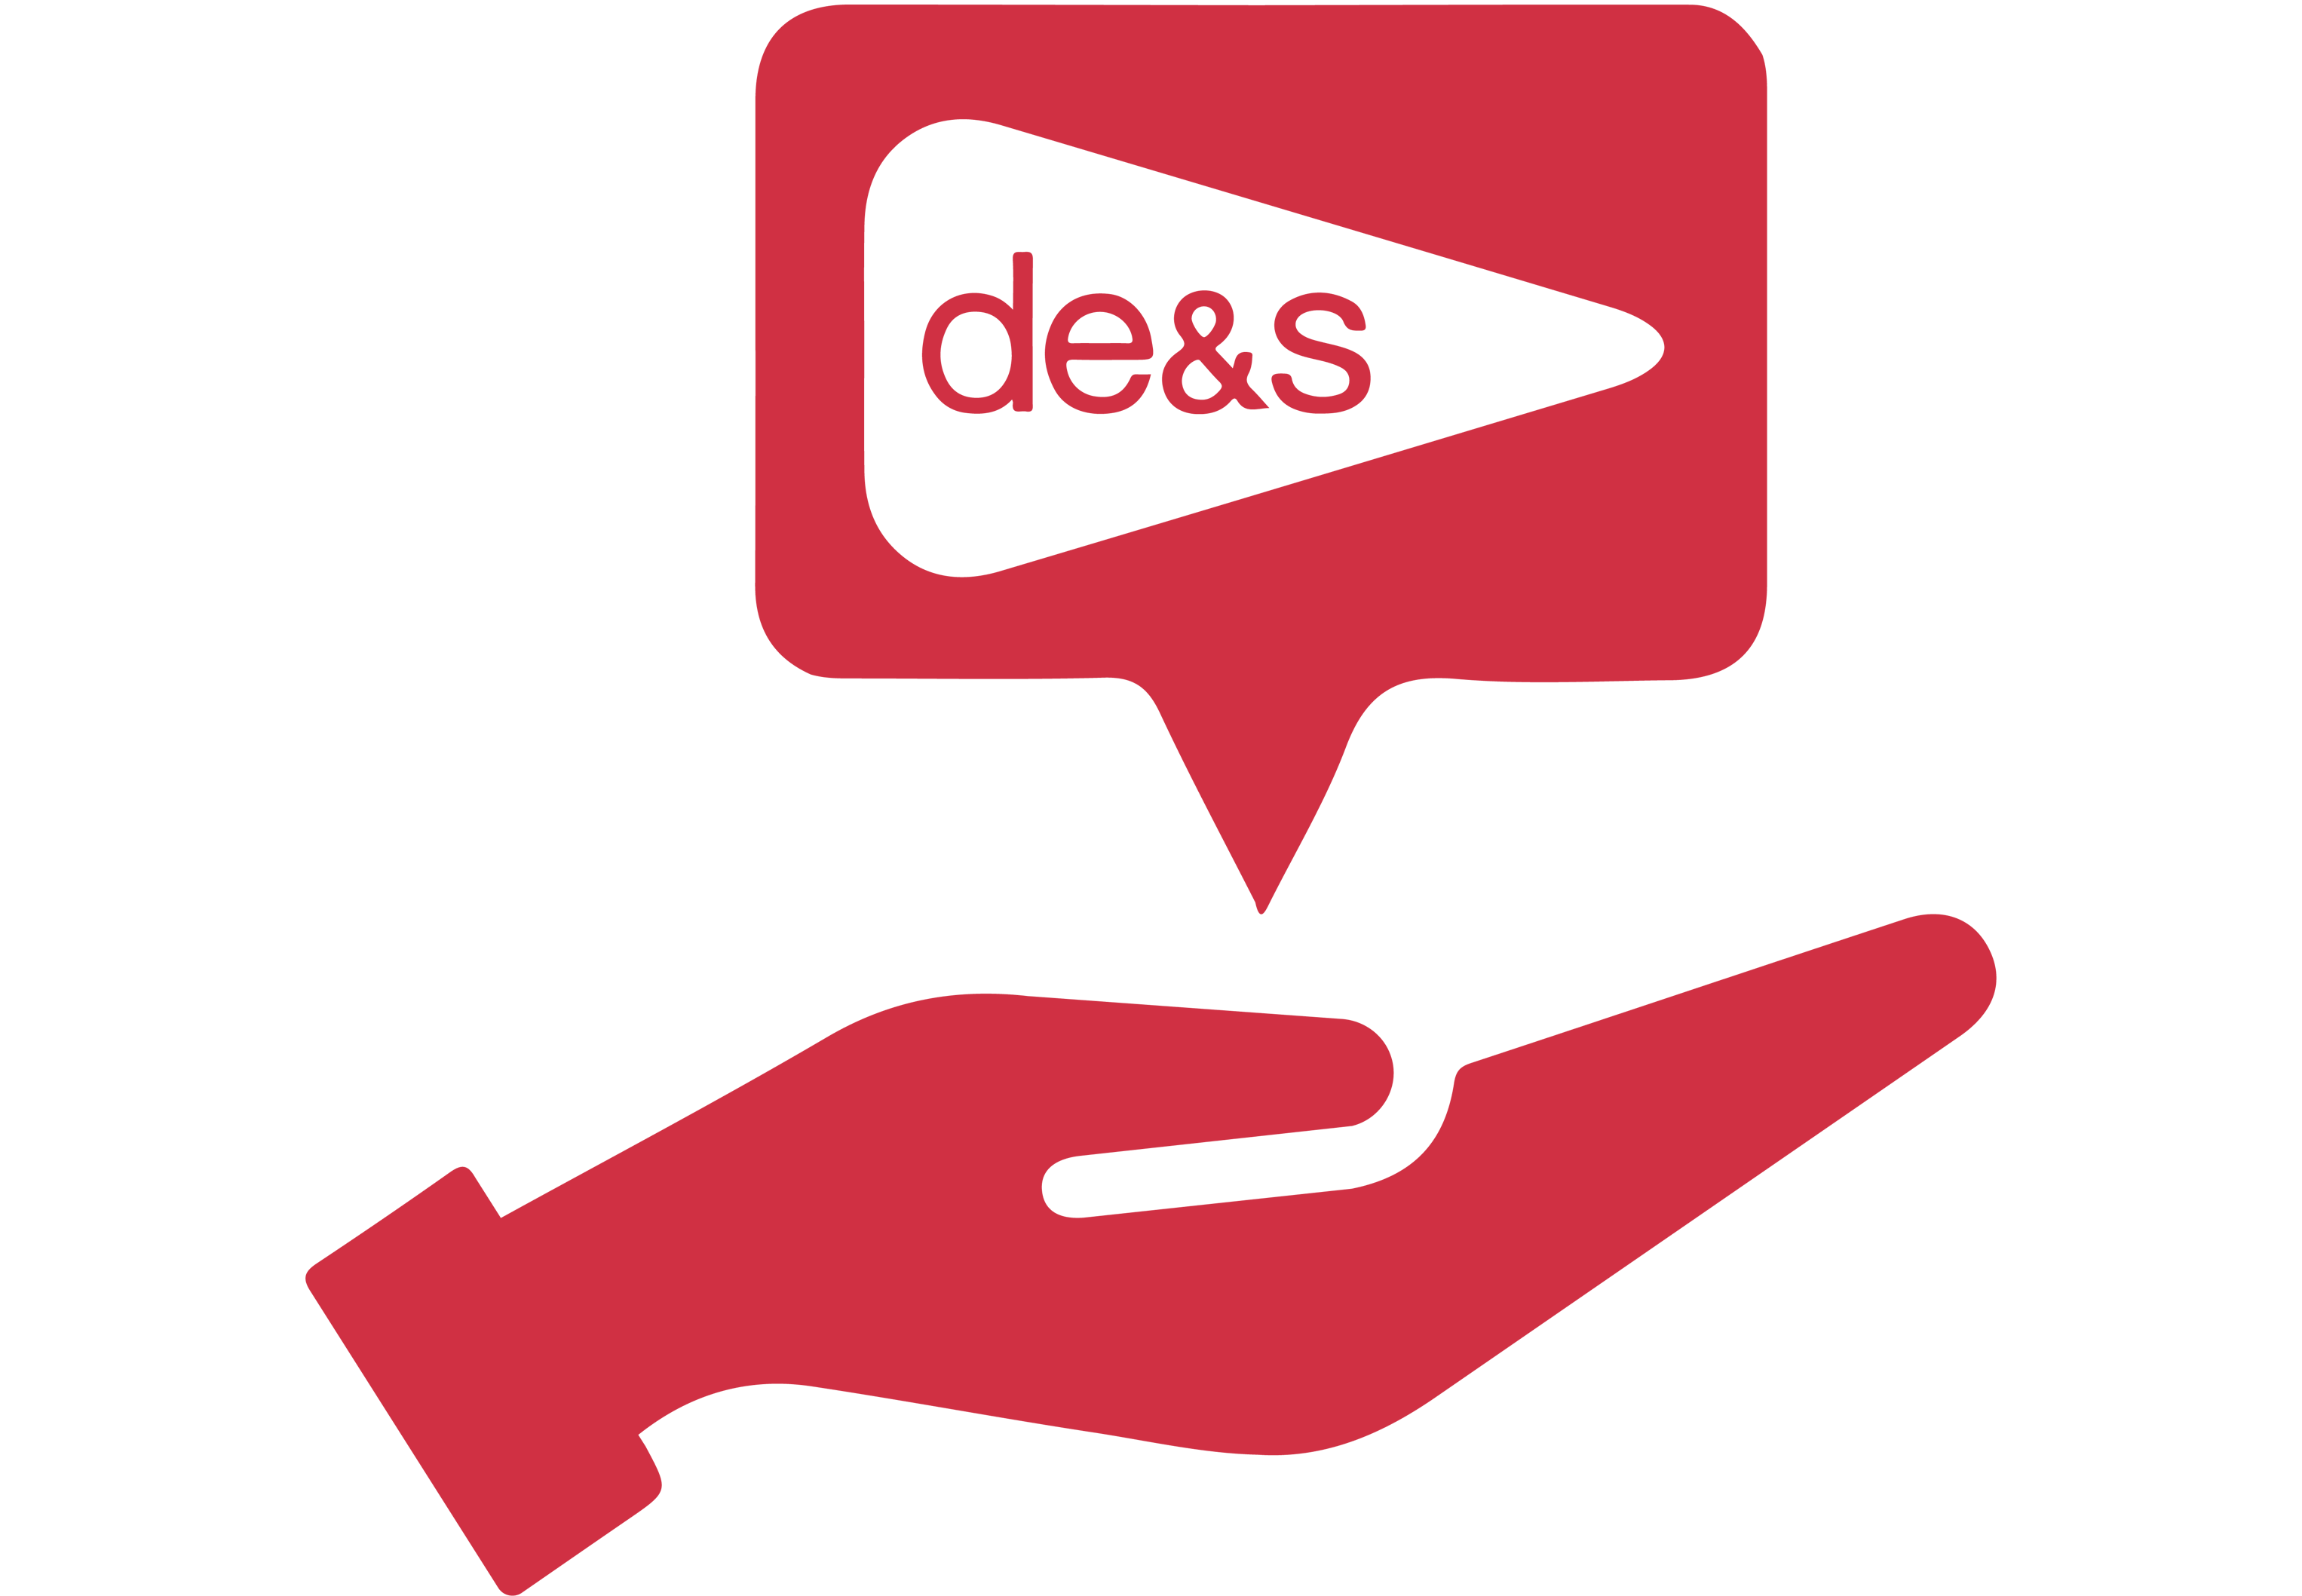 Red logo showing a hand holding a speech bubble with the DE&S logo in it